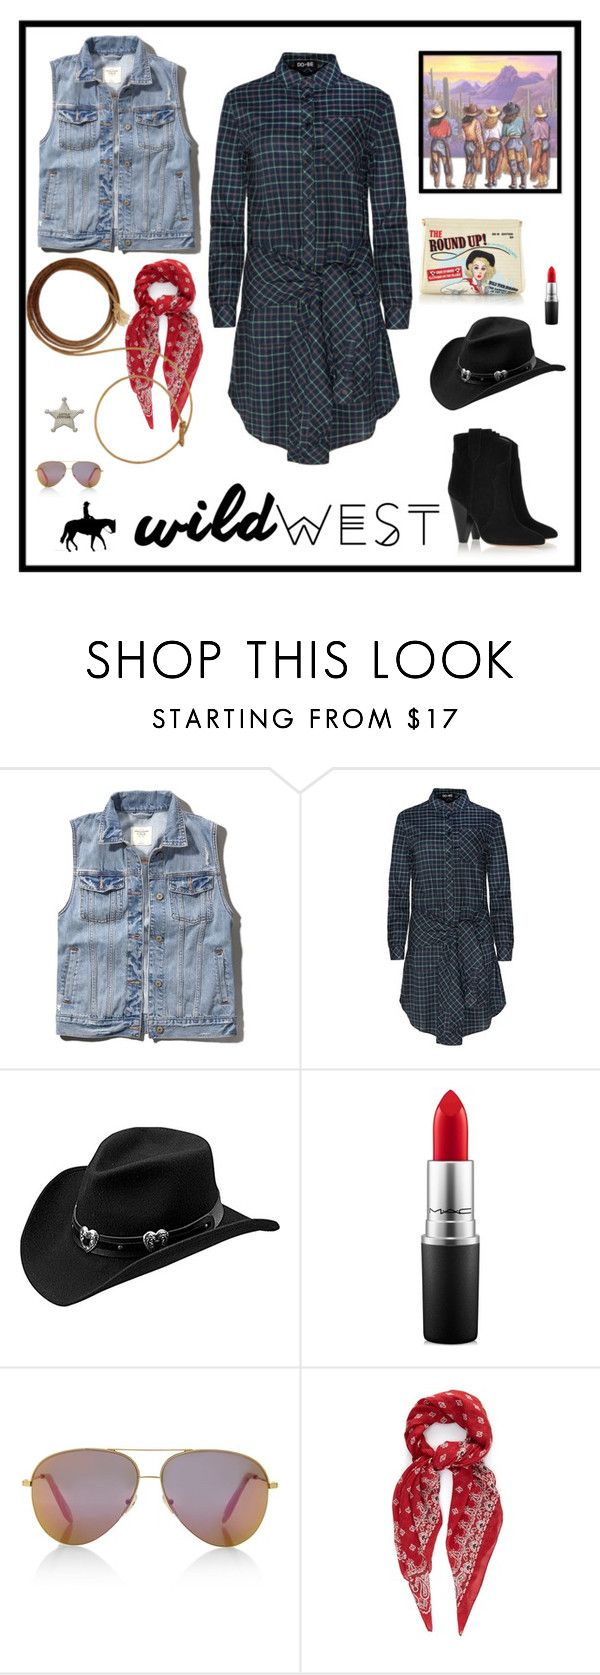 """""""Wild West Style"""" by humblechick1 on Polyvore featuring Abercrombie & Fitch, Master Hatters of Texas, Charlotte Olympia, MAC Cosmetics, Victoria, Victoria Beckham, Yves Saint Laurent, Isabel Marant and wildwest"""